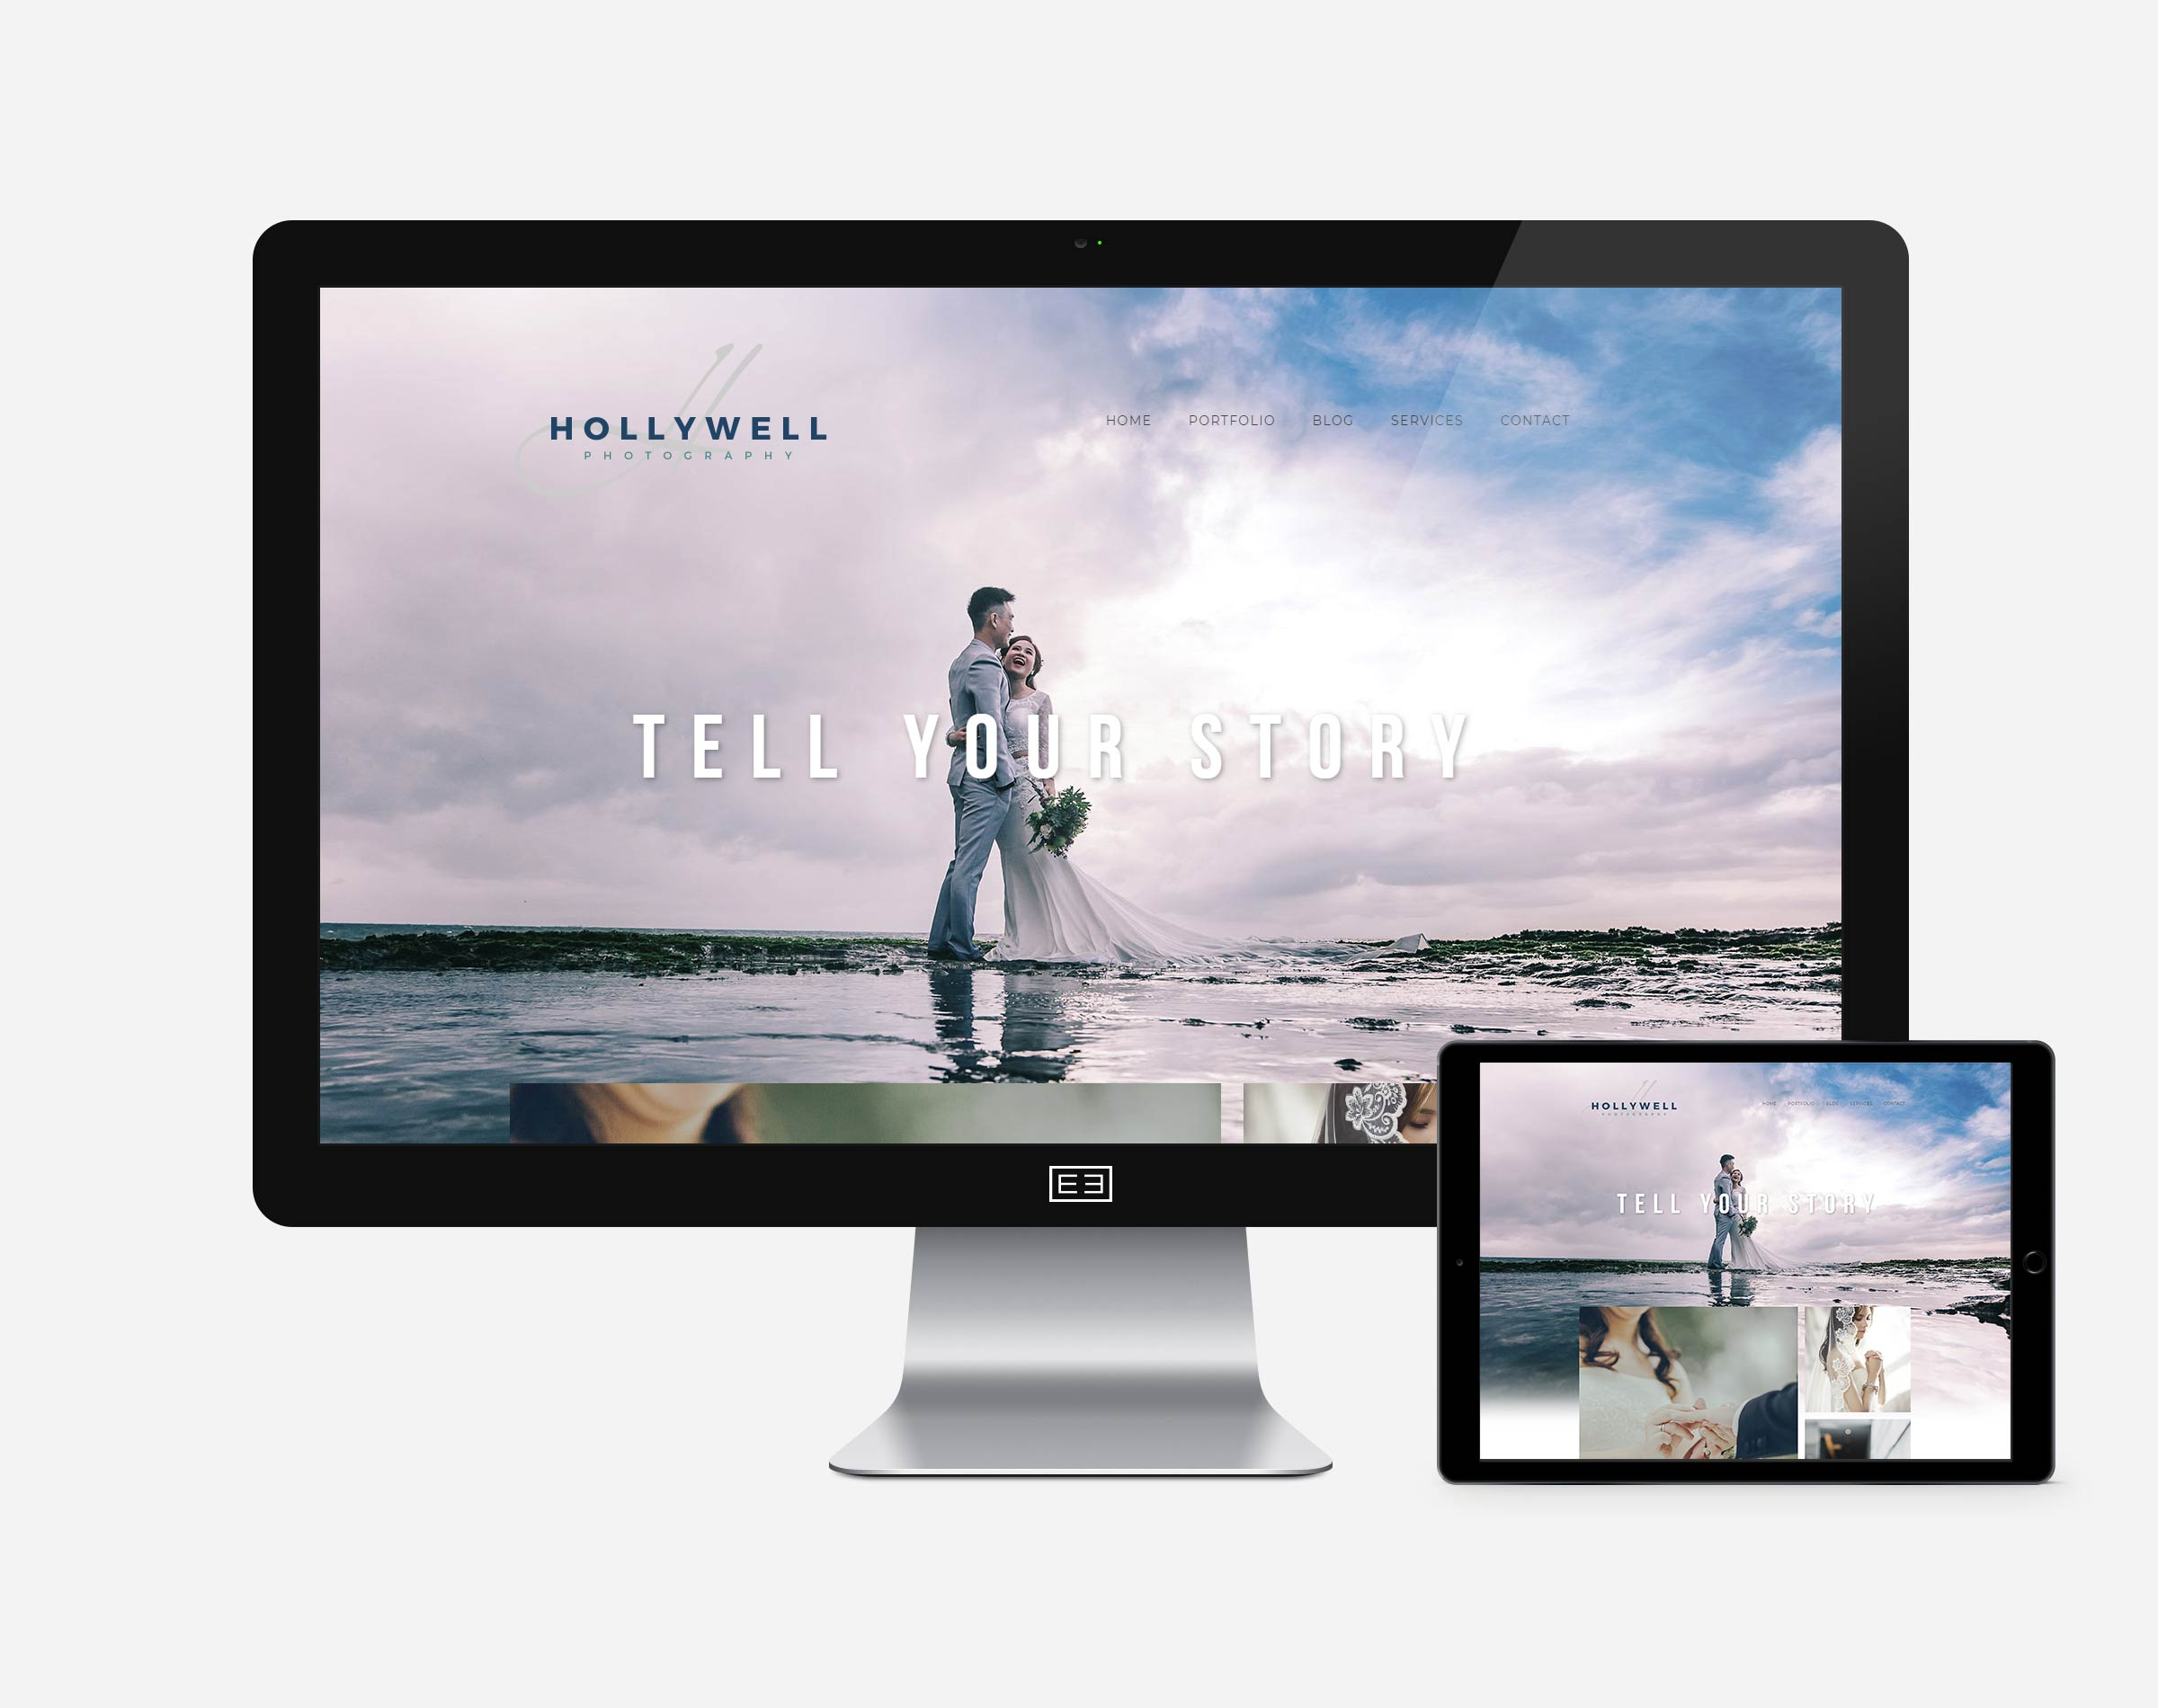 Wordpress Photography Site1 Mockup